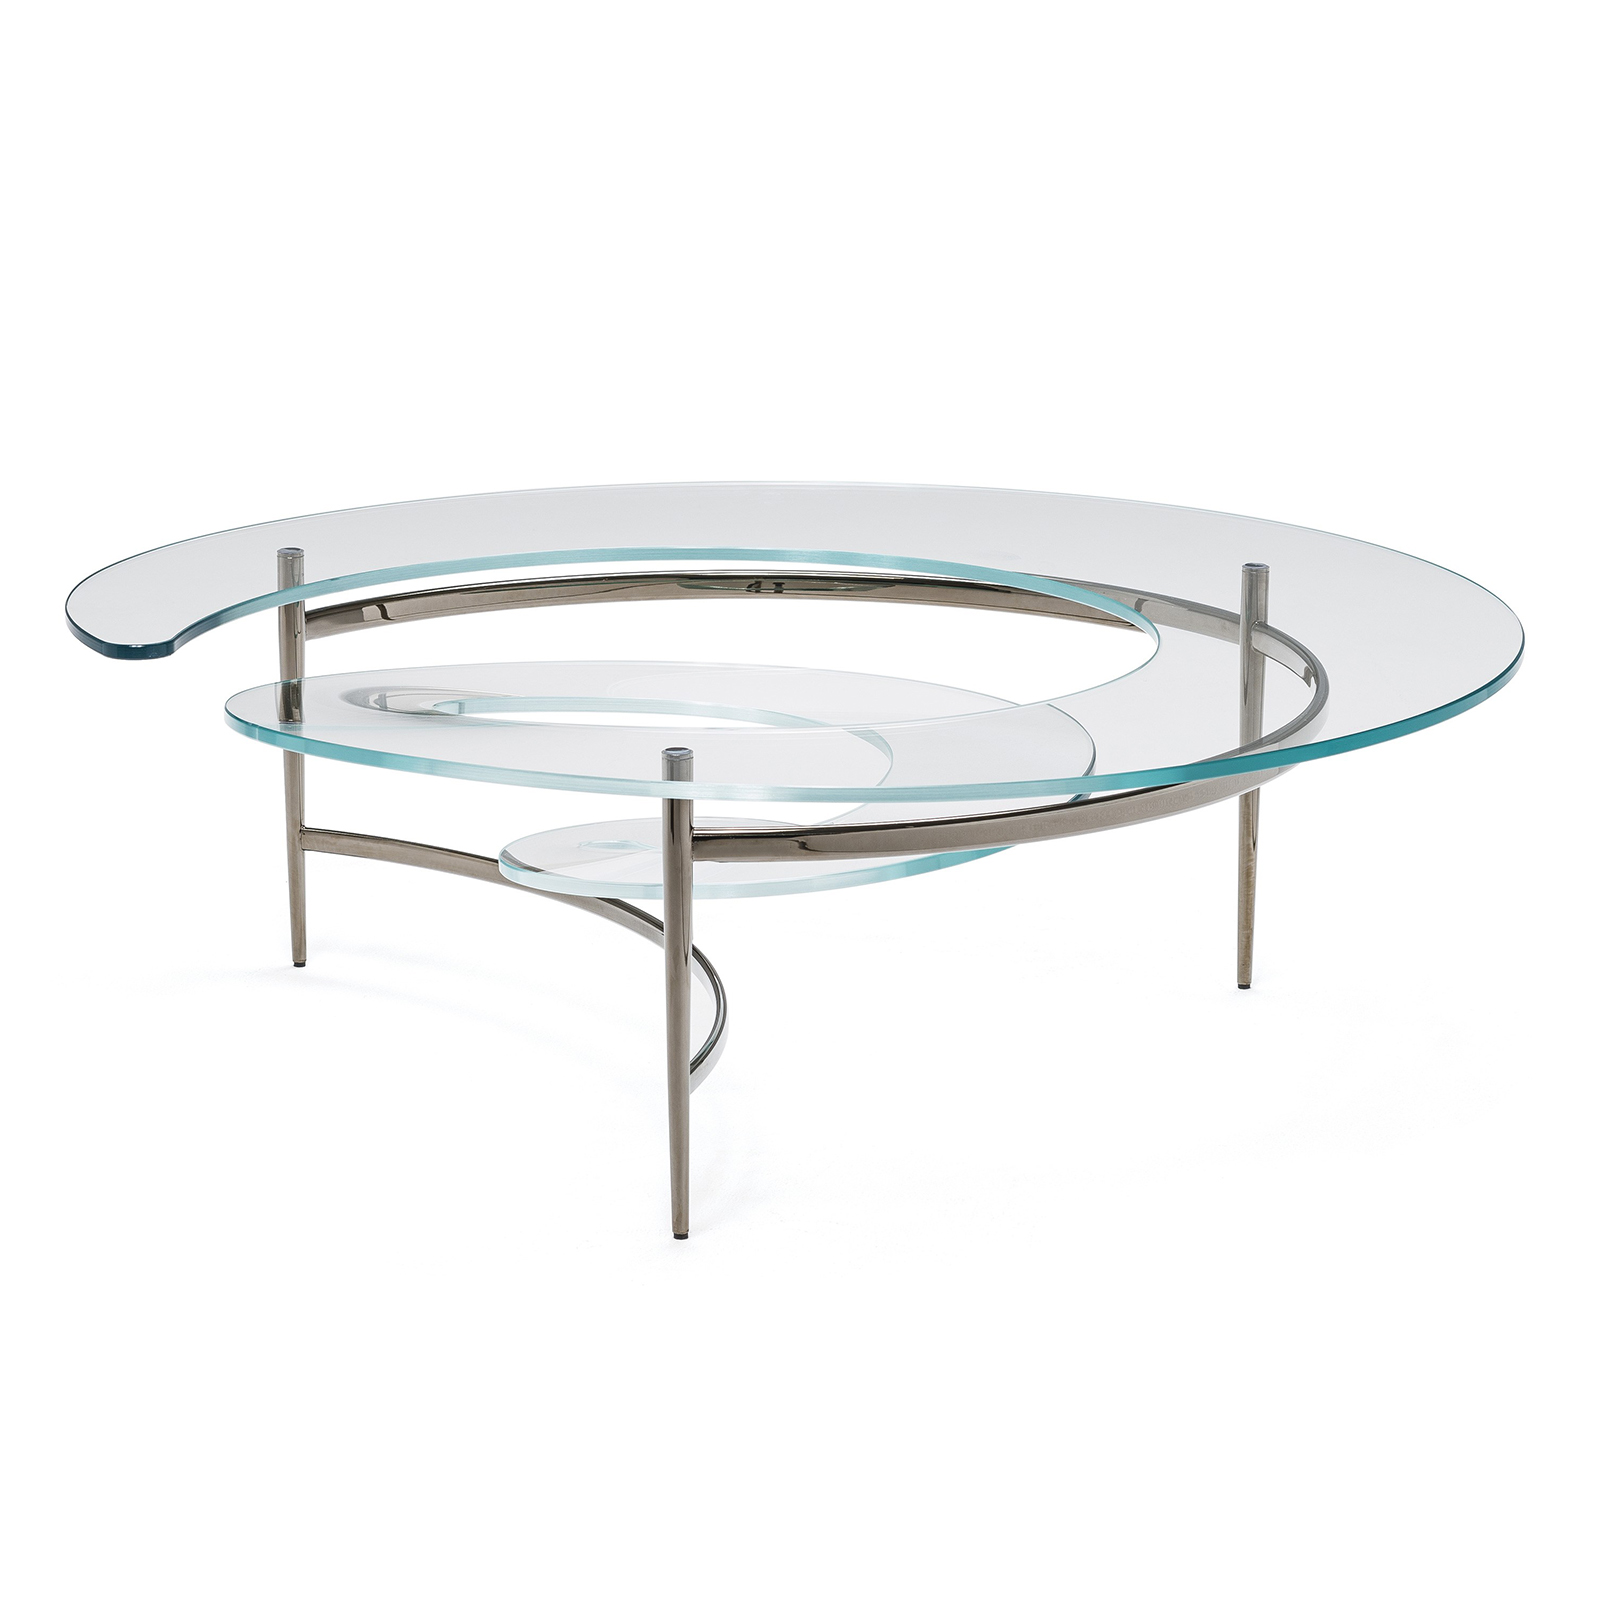 Table basse design en verre spirale mobilier de luxe for Table basse verre